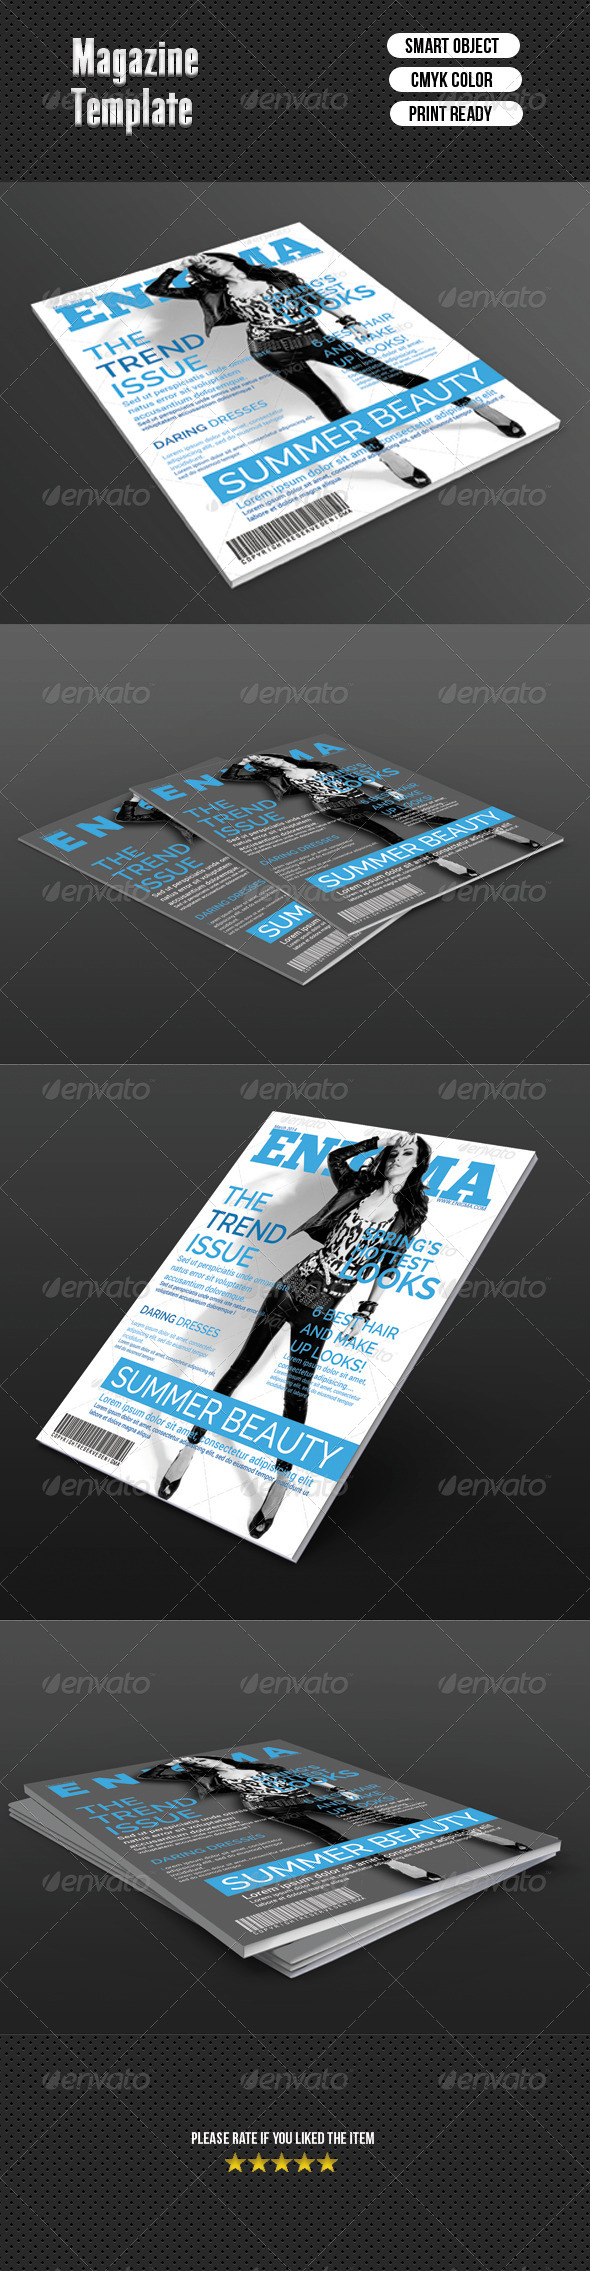 Fashion Magazine Cover Template - Magazines Print Templates